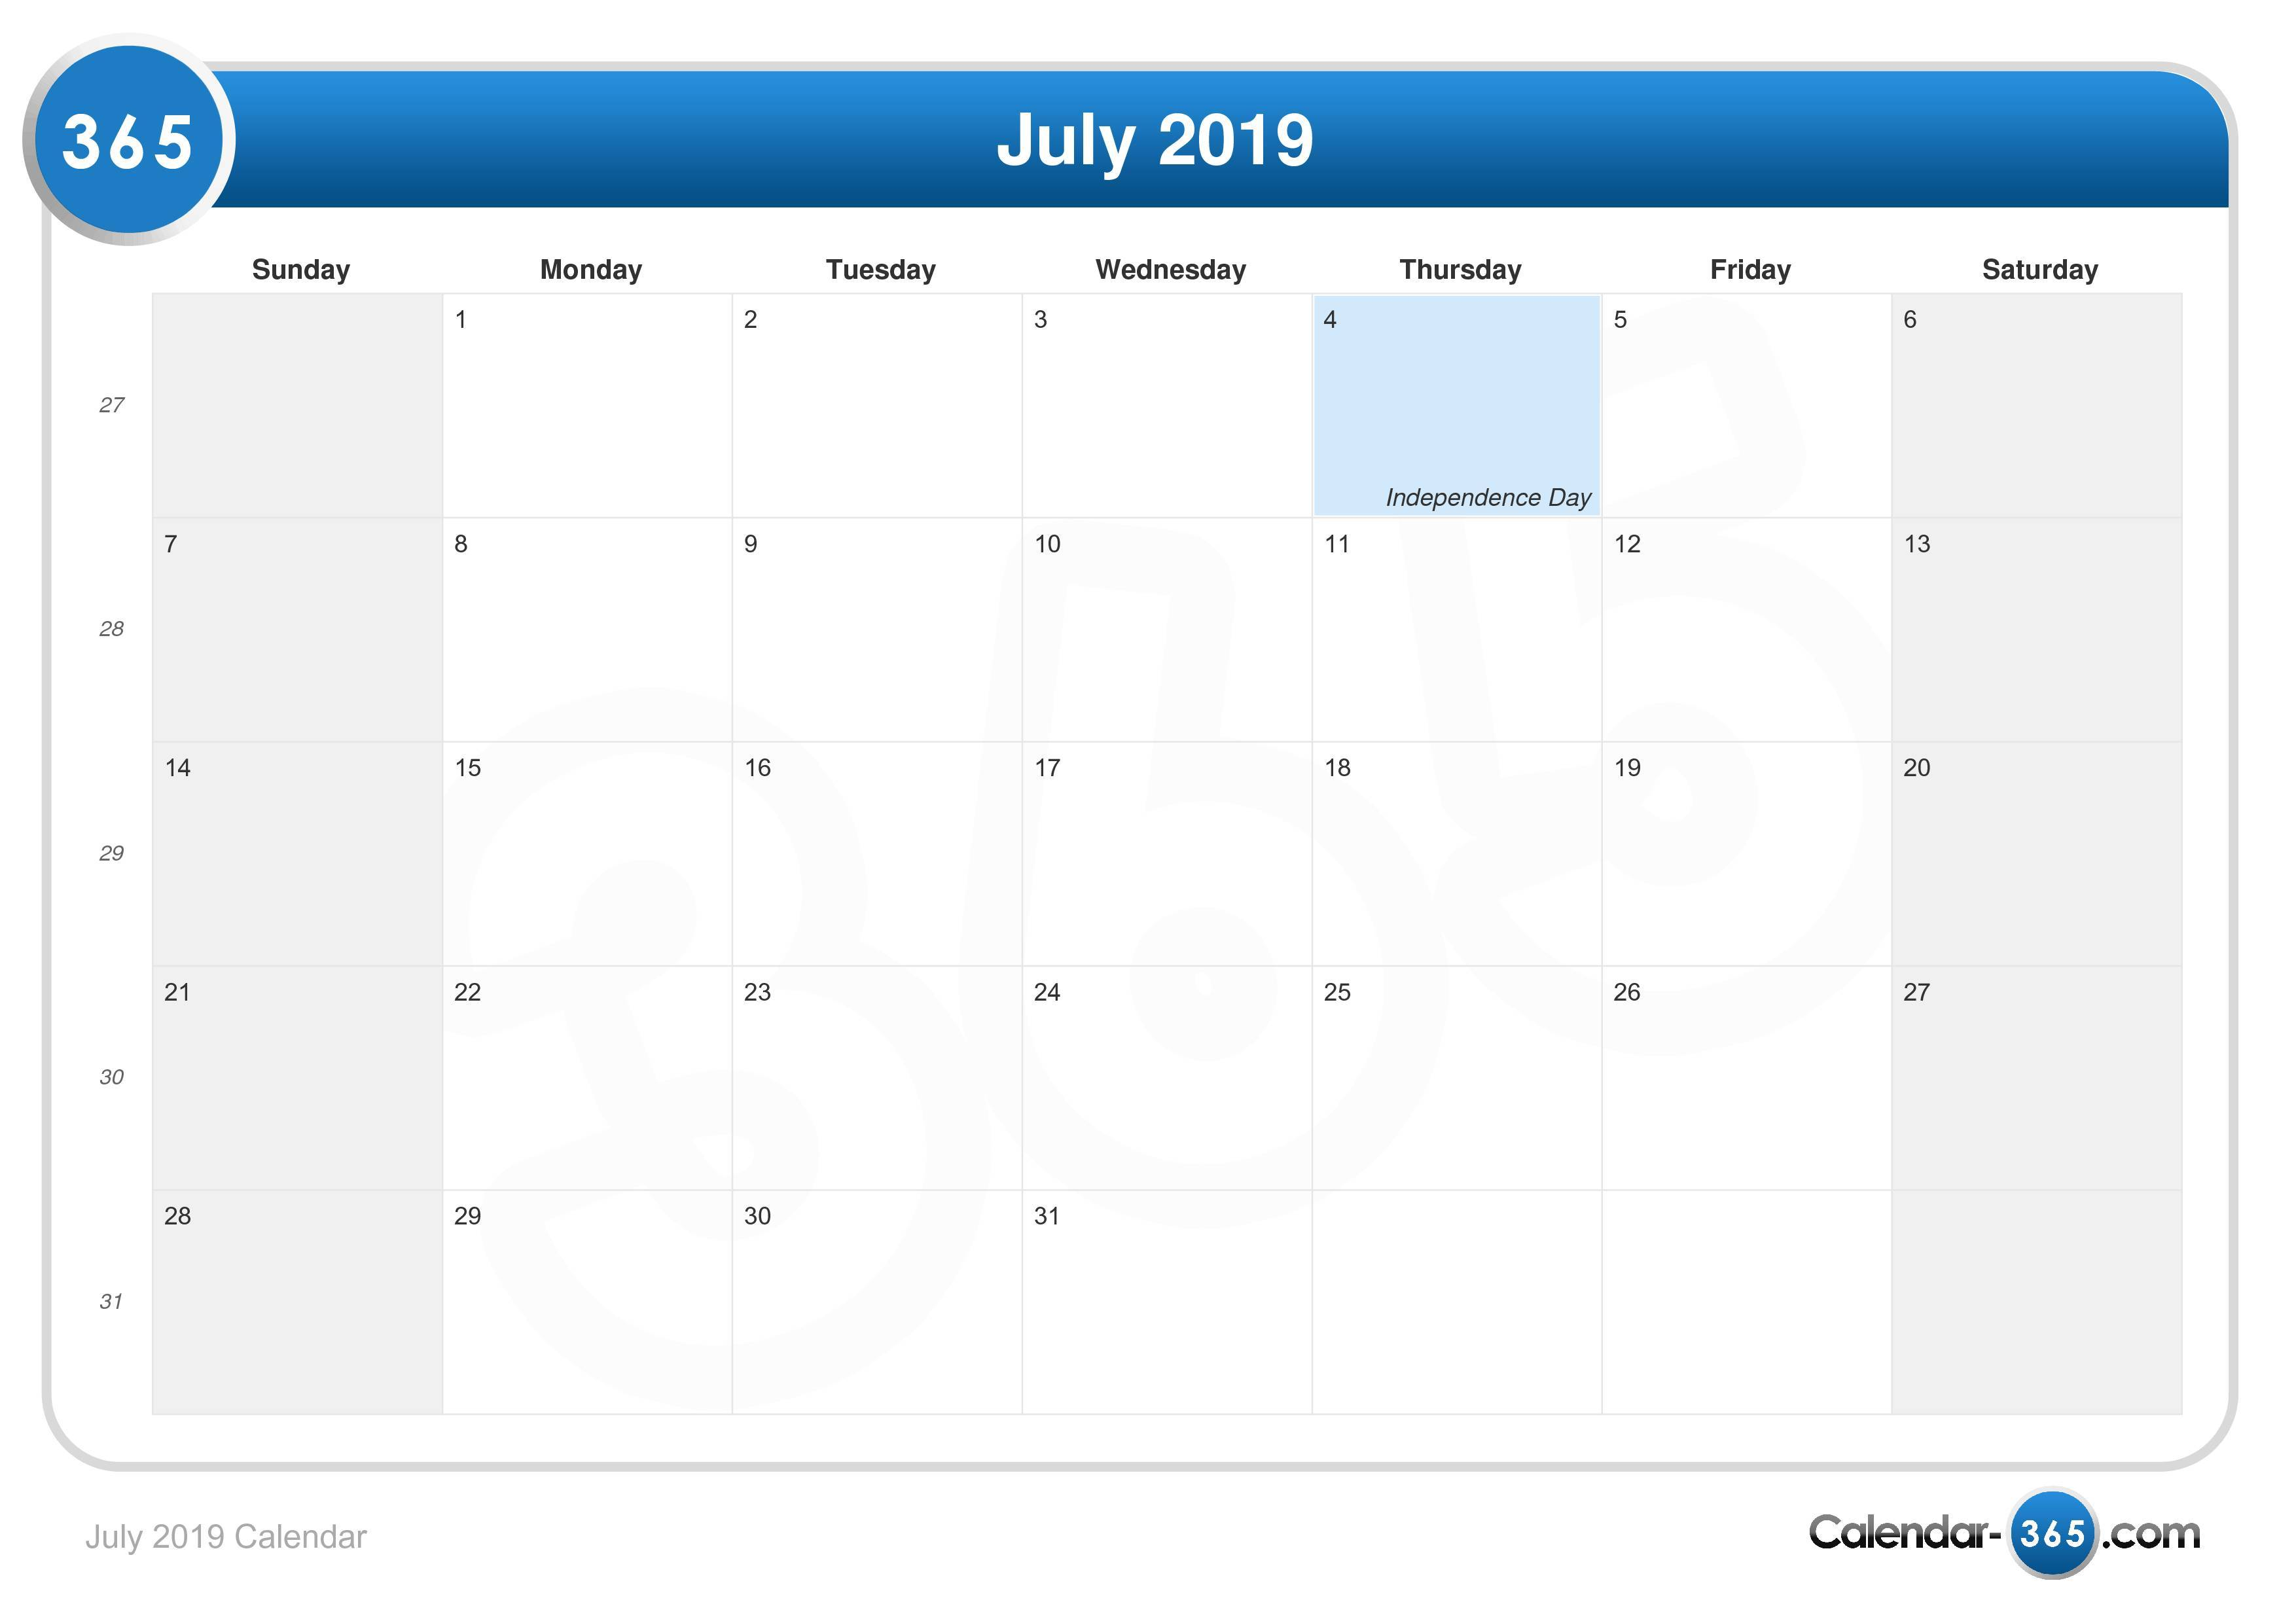 Weekends and holidays in July 2019 in Russia: calendar 55